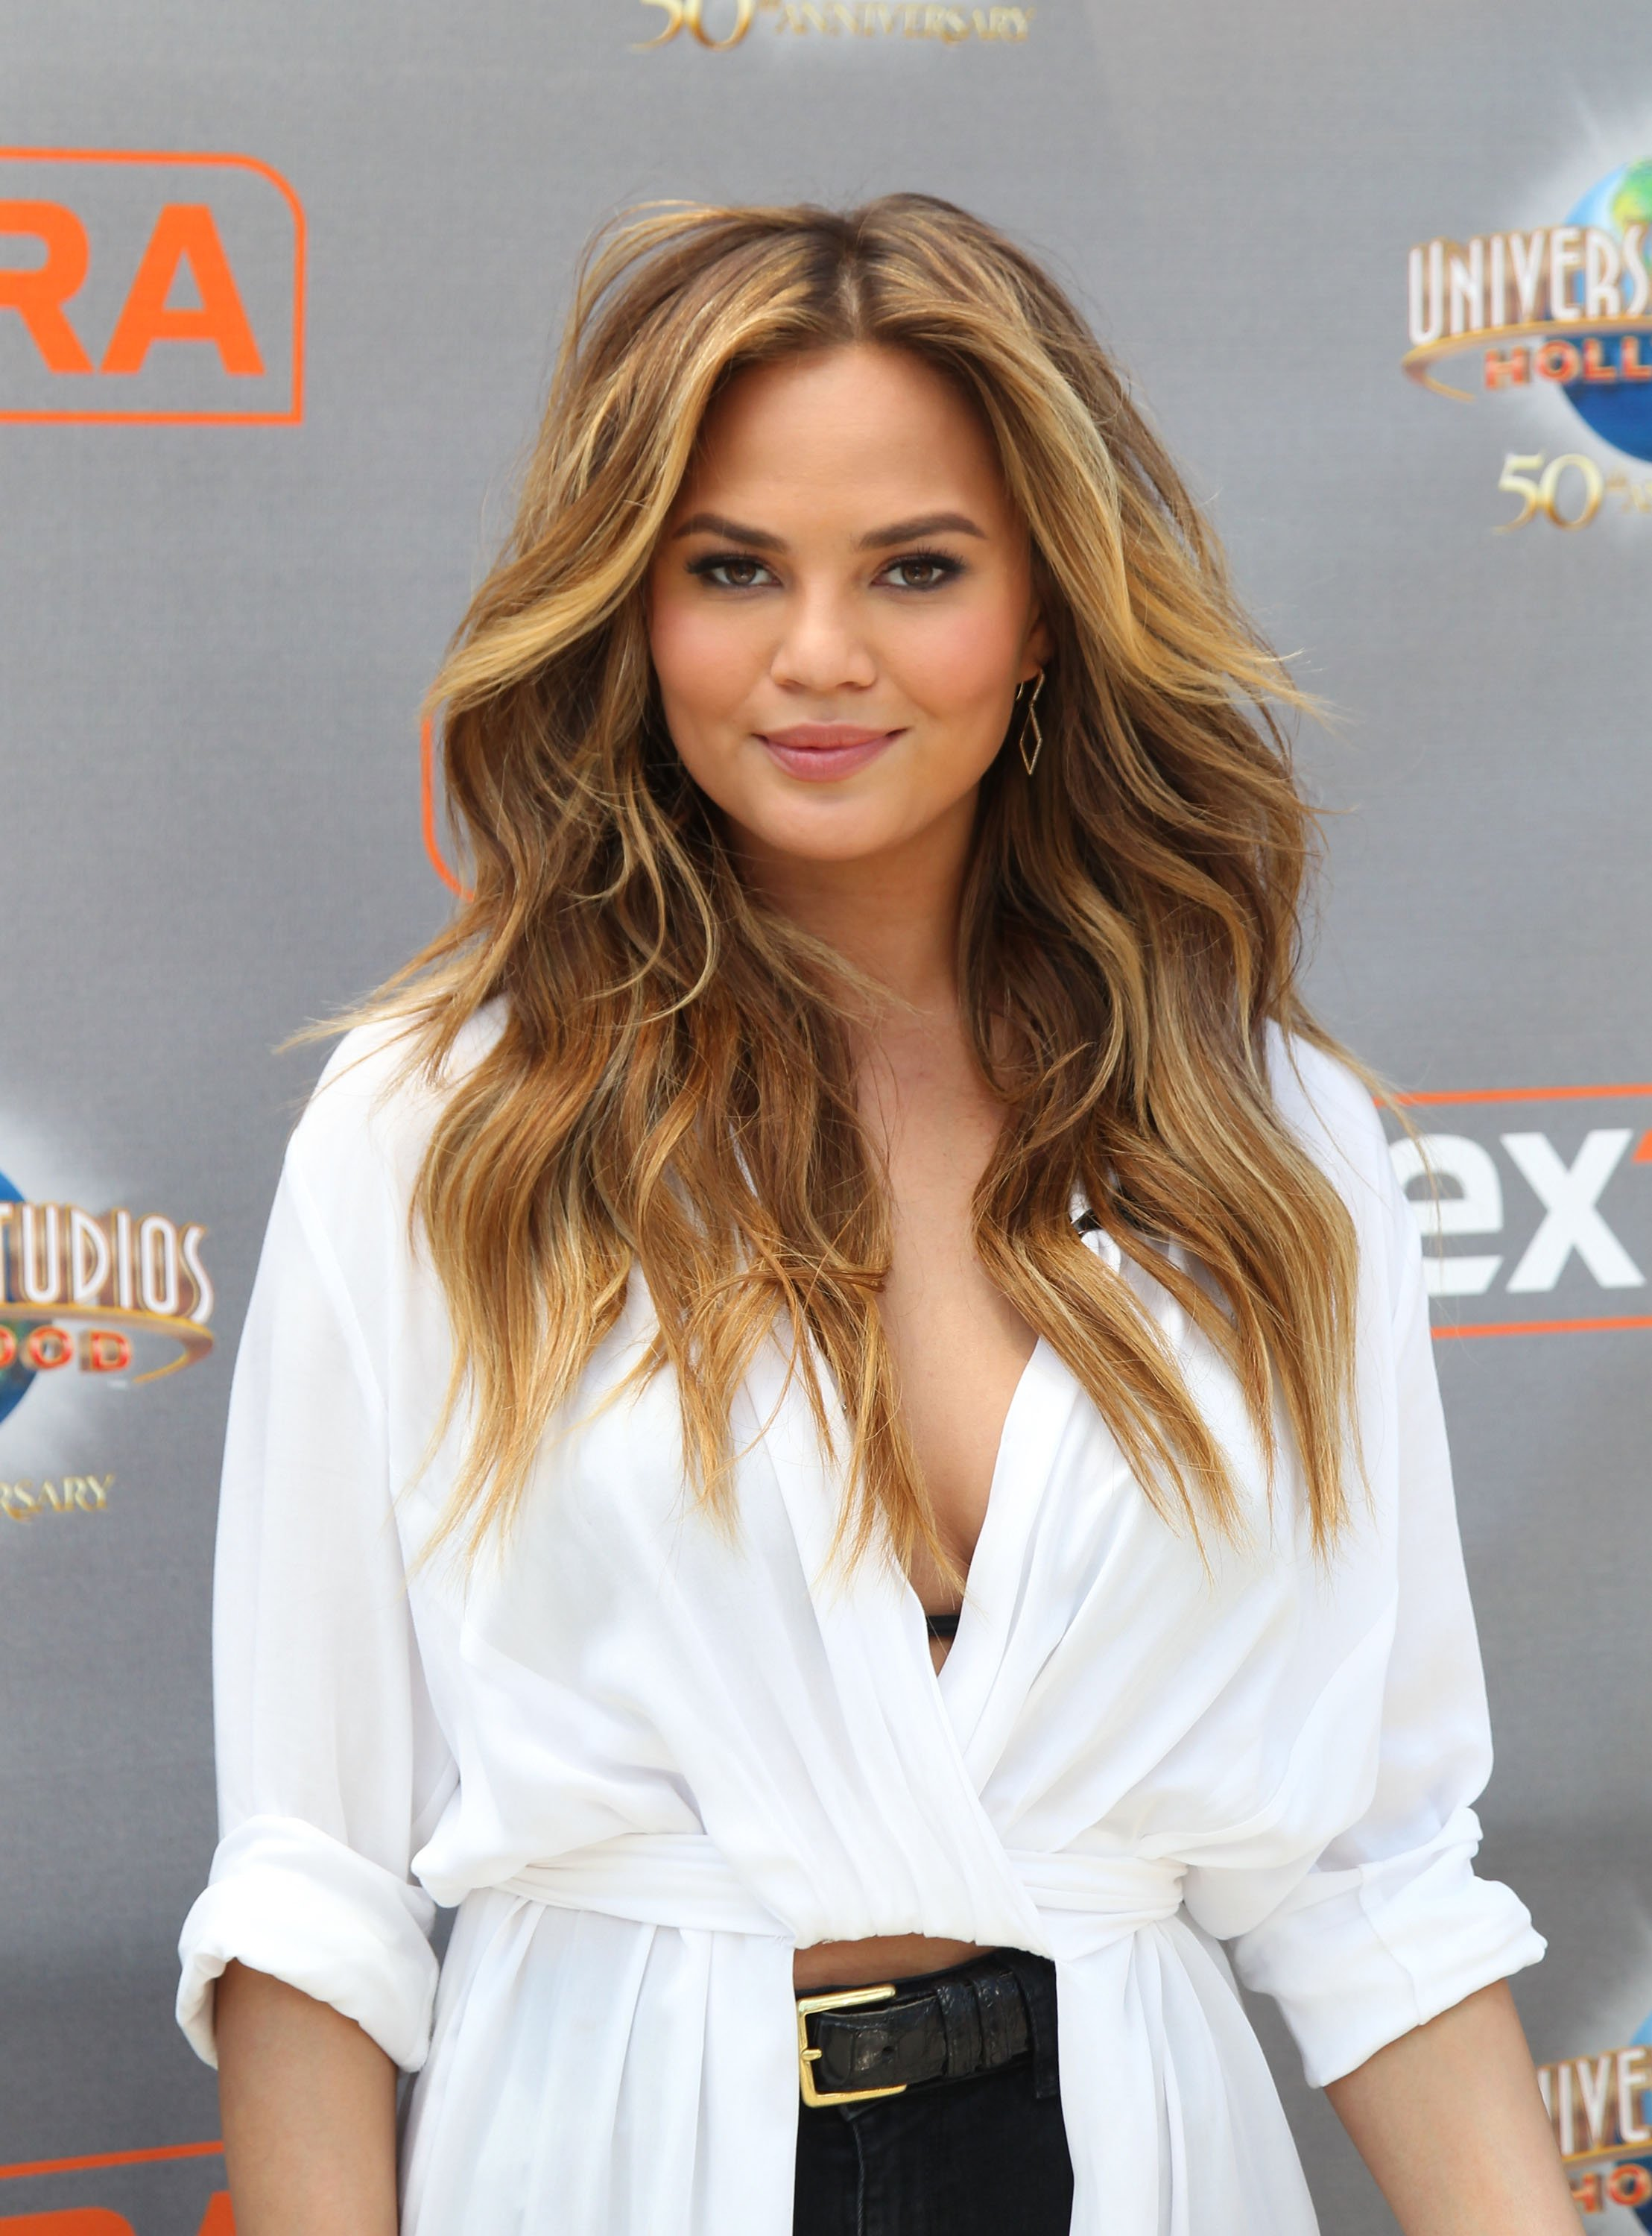 """Model Chrissy Teigen visits """"Extra"""" at Universal Studios Hollywood on May 20, 2015 in Universal City, California   Photo: Getty Images"""